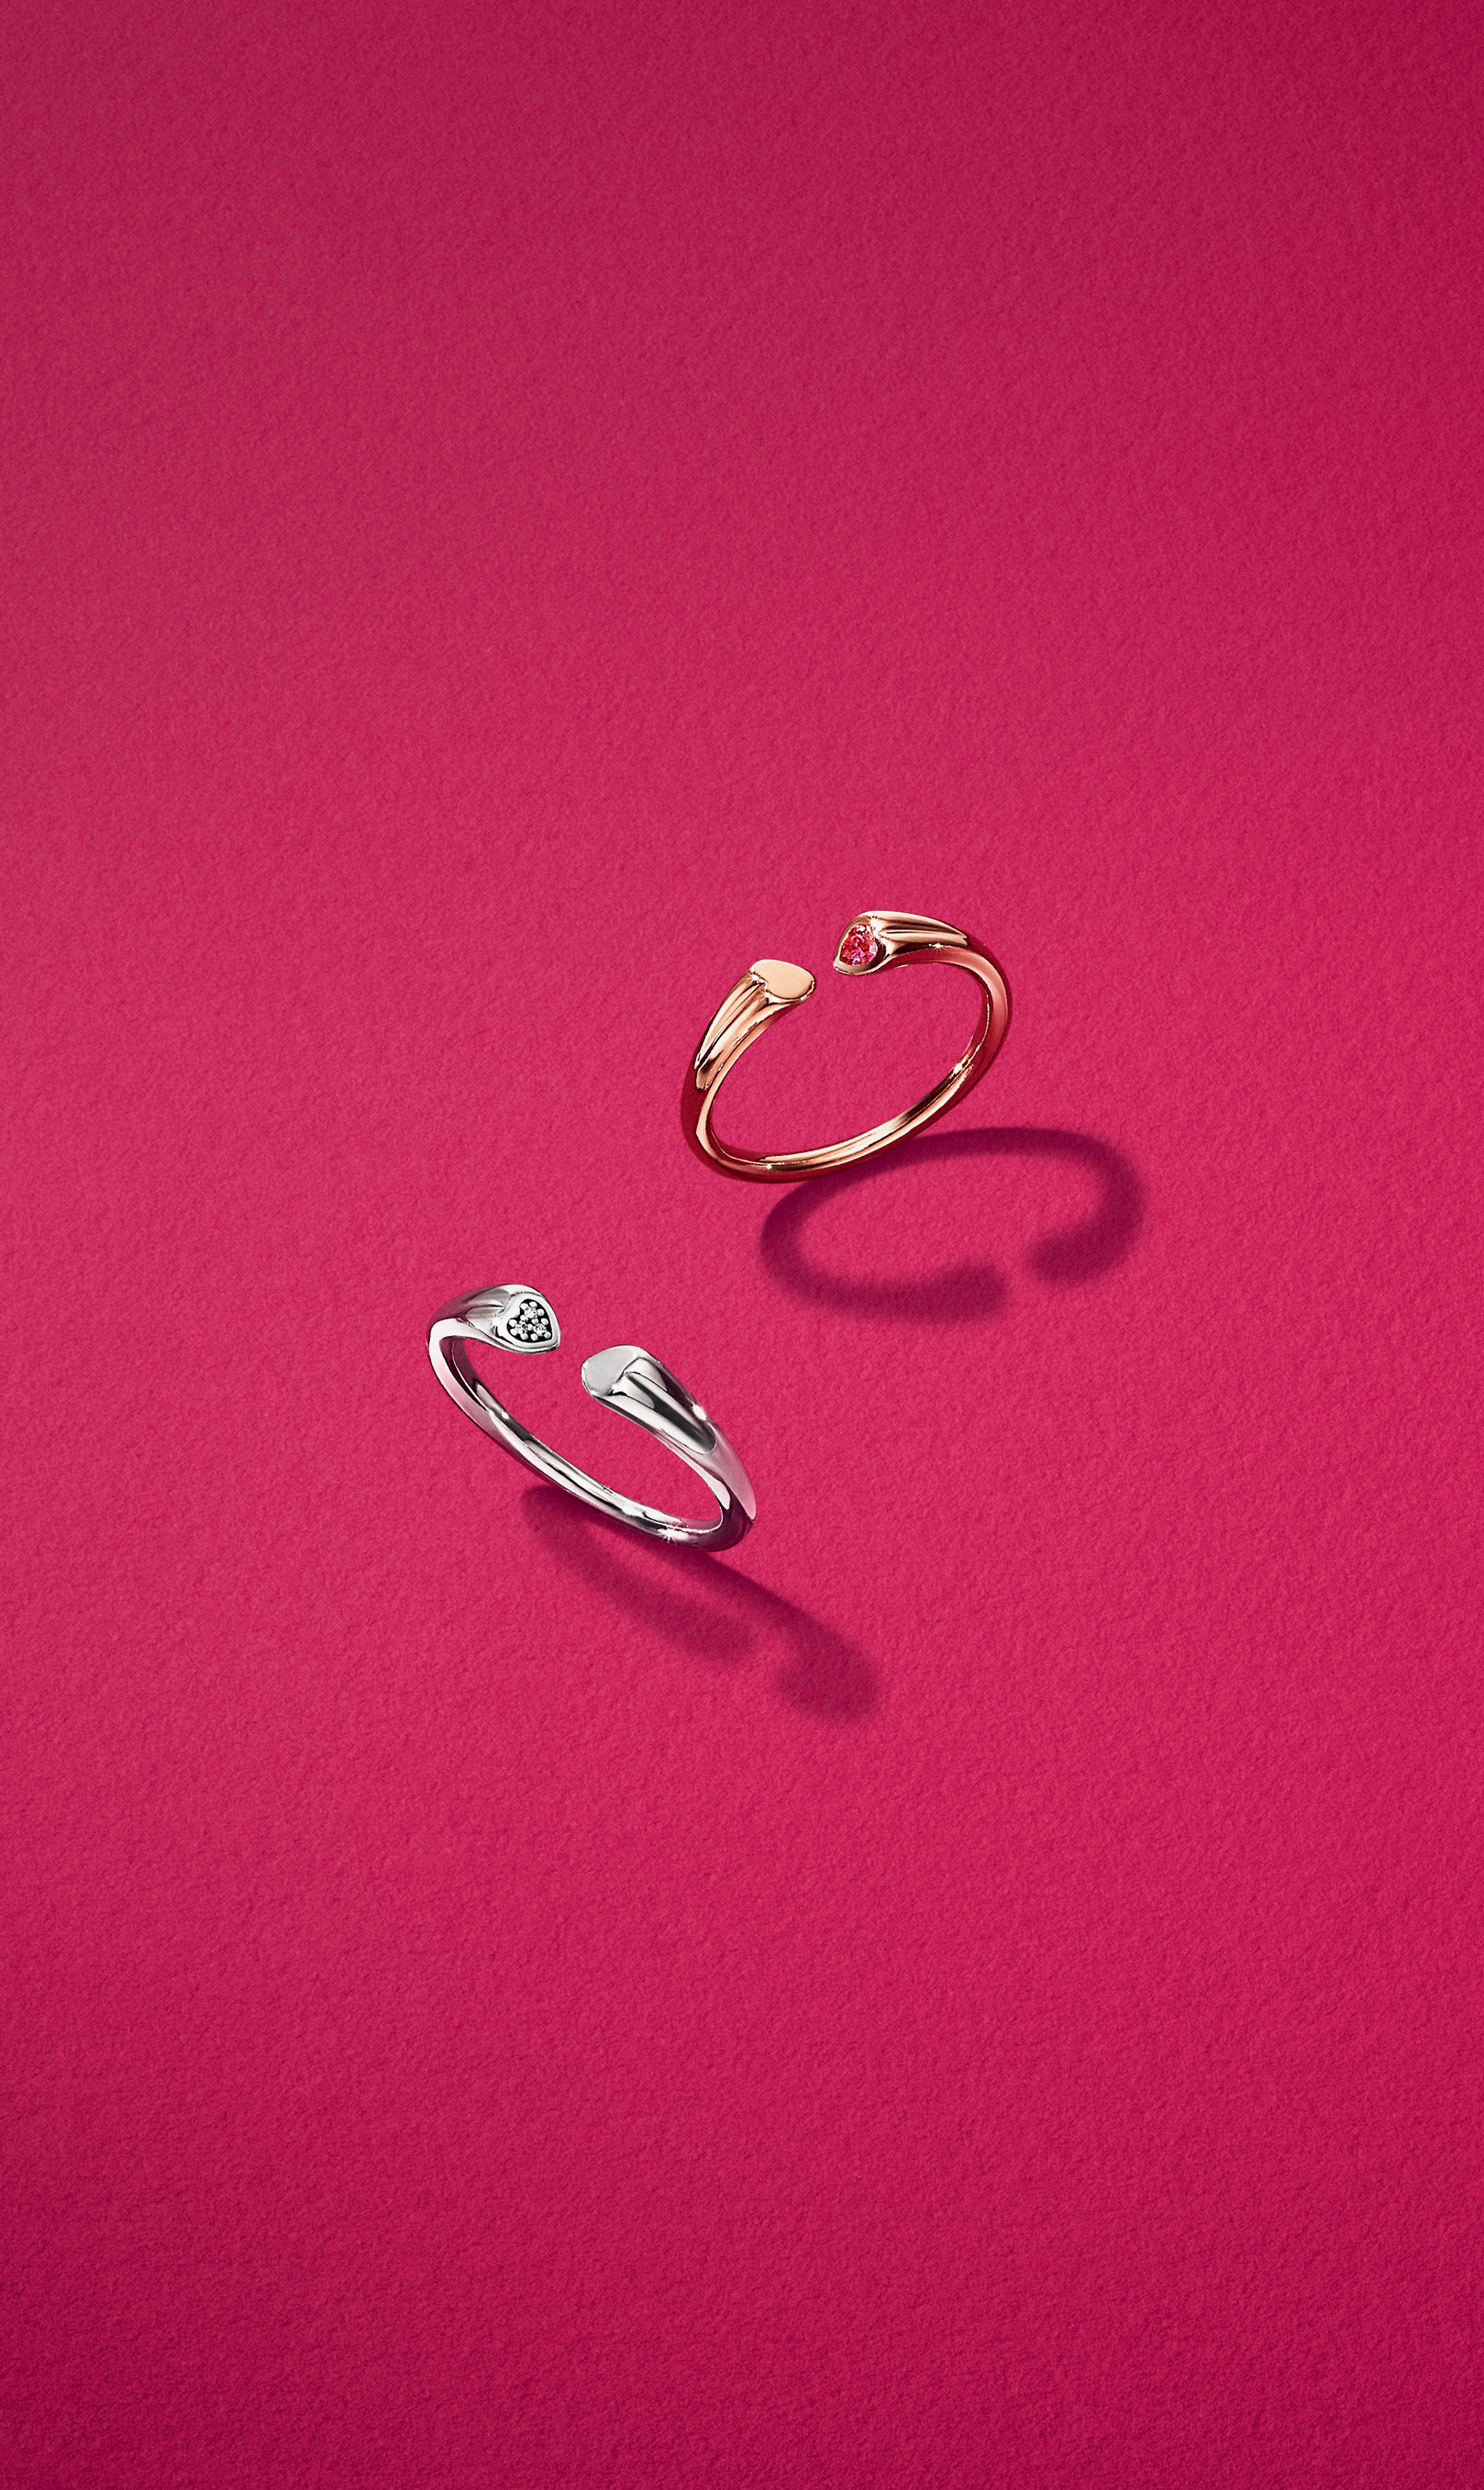 A Stylish Interpretation Of The Enduring Quality Of A Love